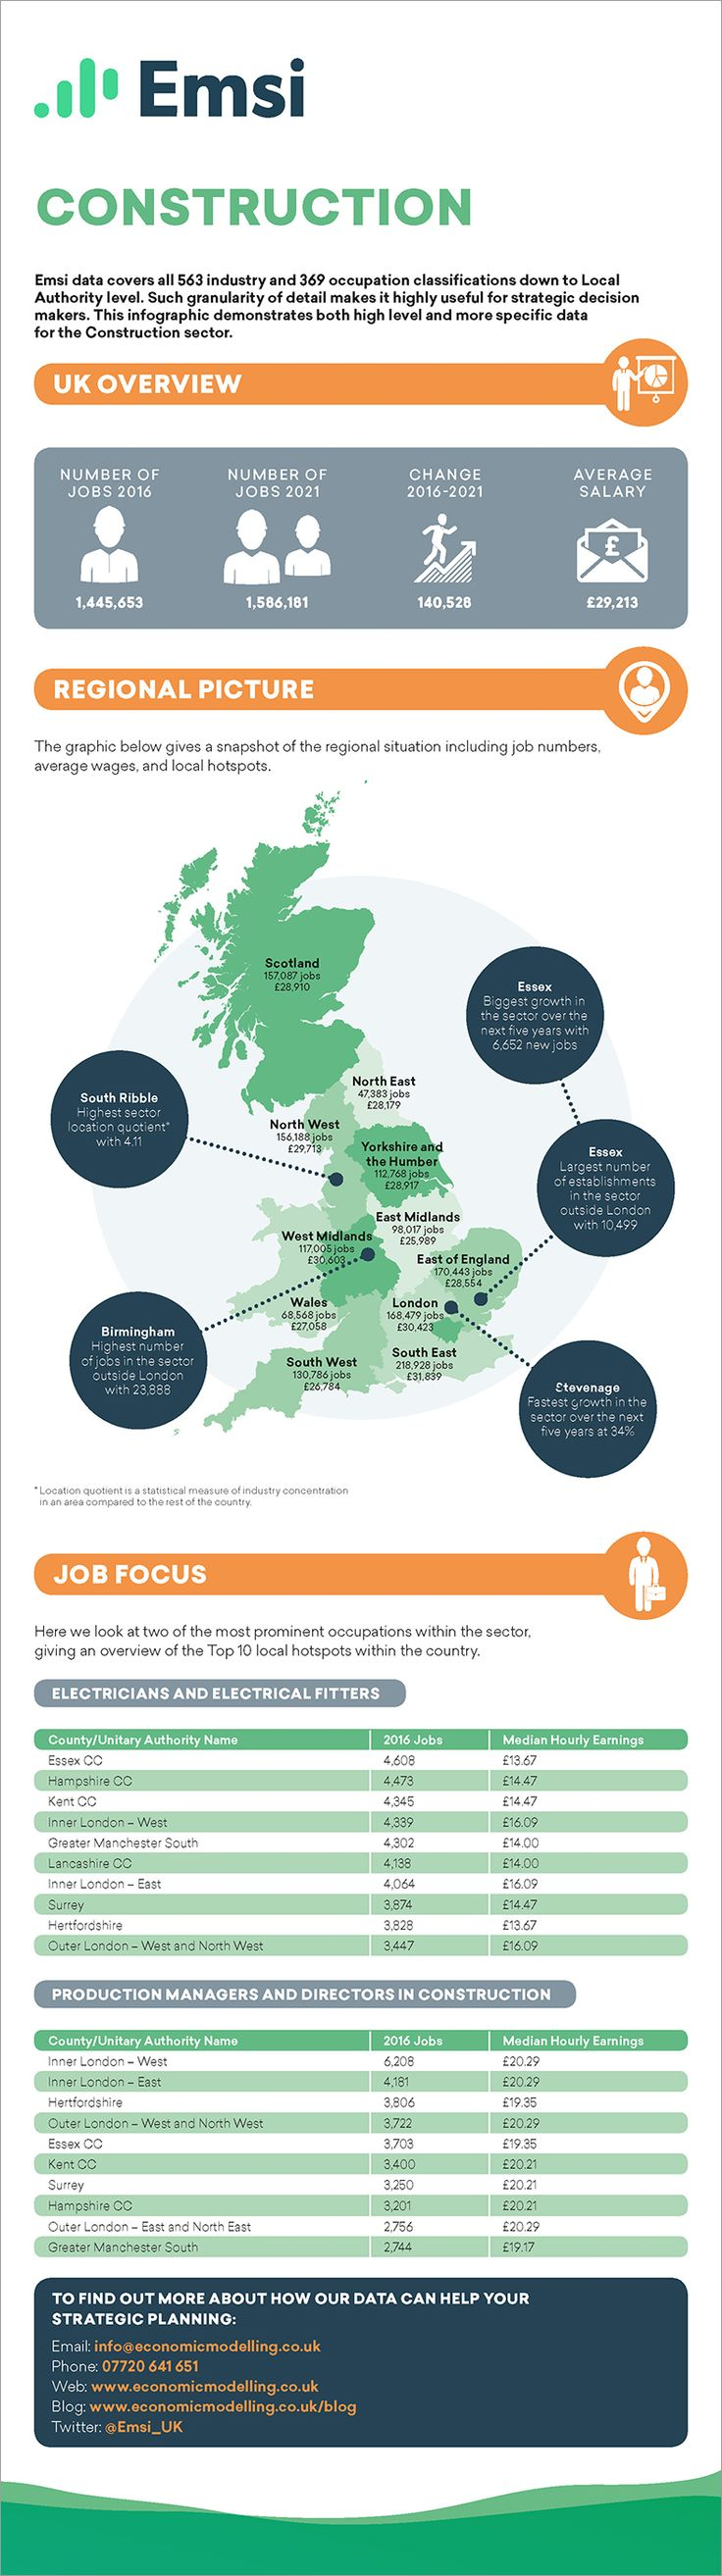 Construction EMSI Career Infographic